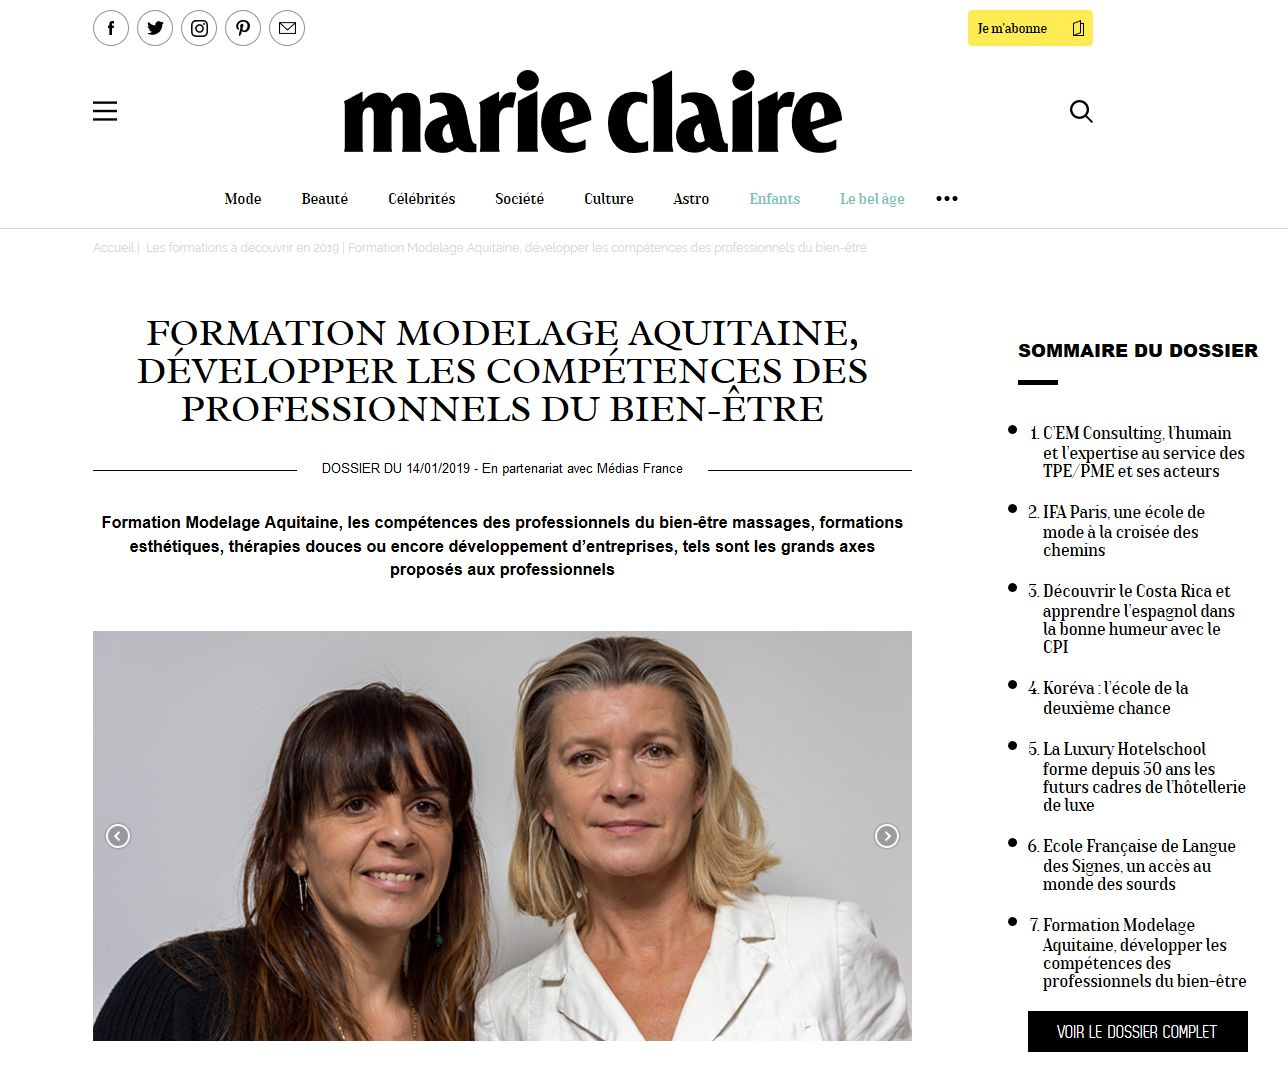 Formation Modela Aquitaine Marie Claire